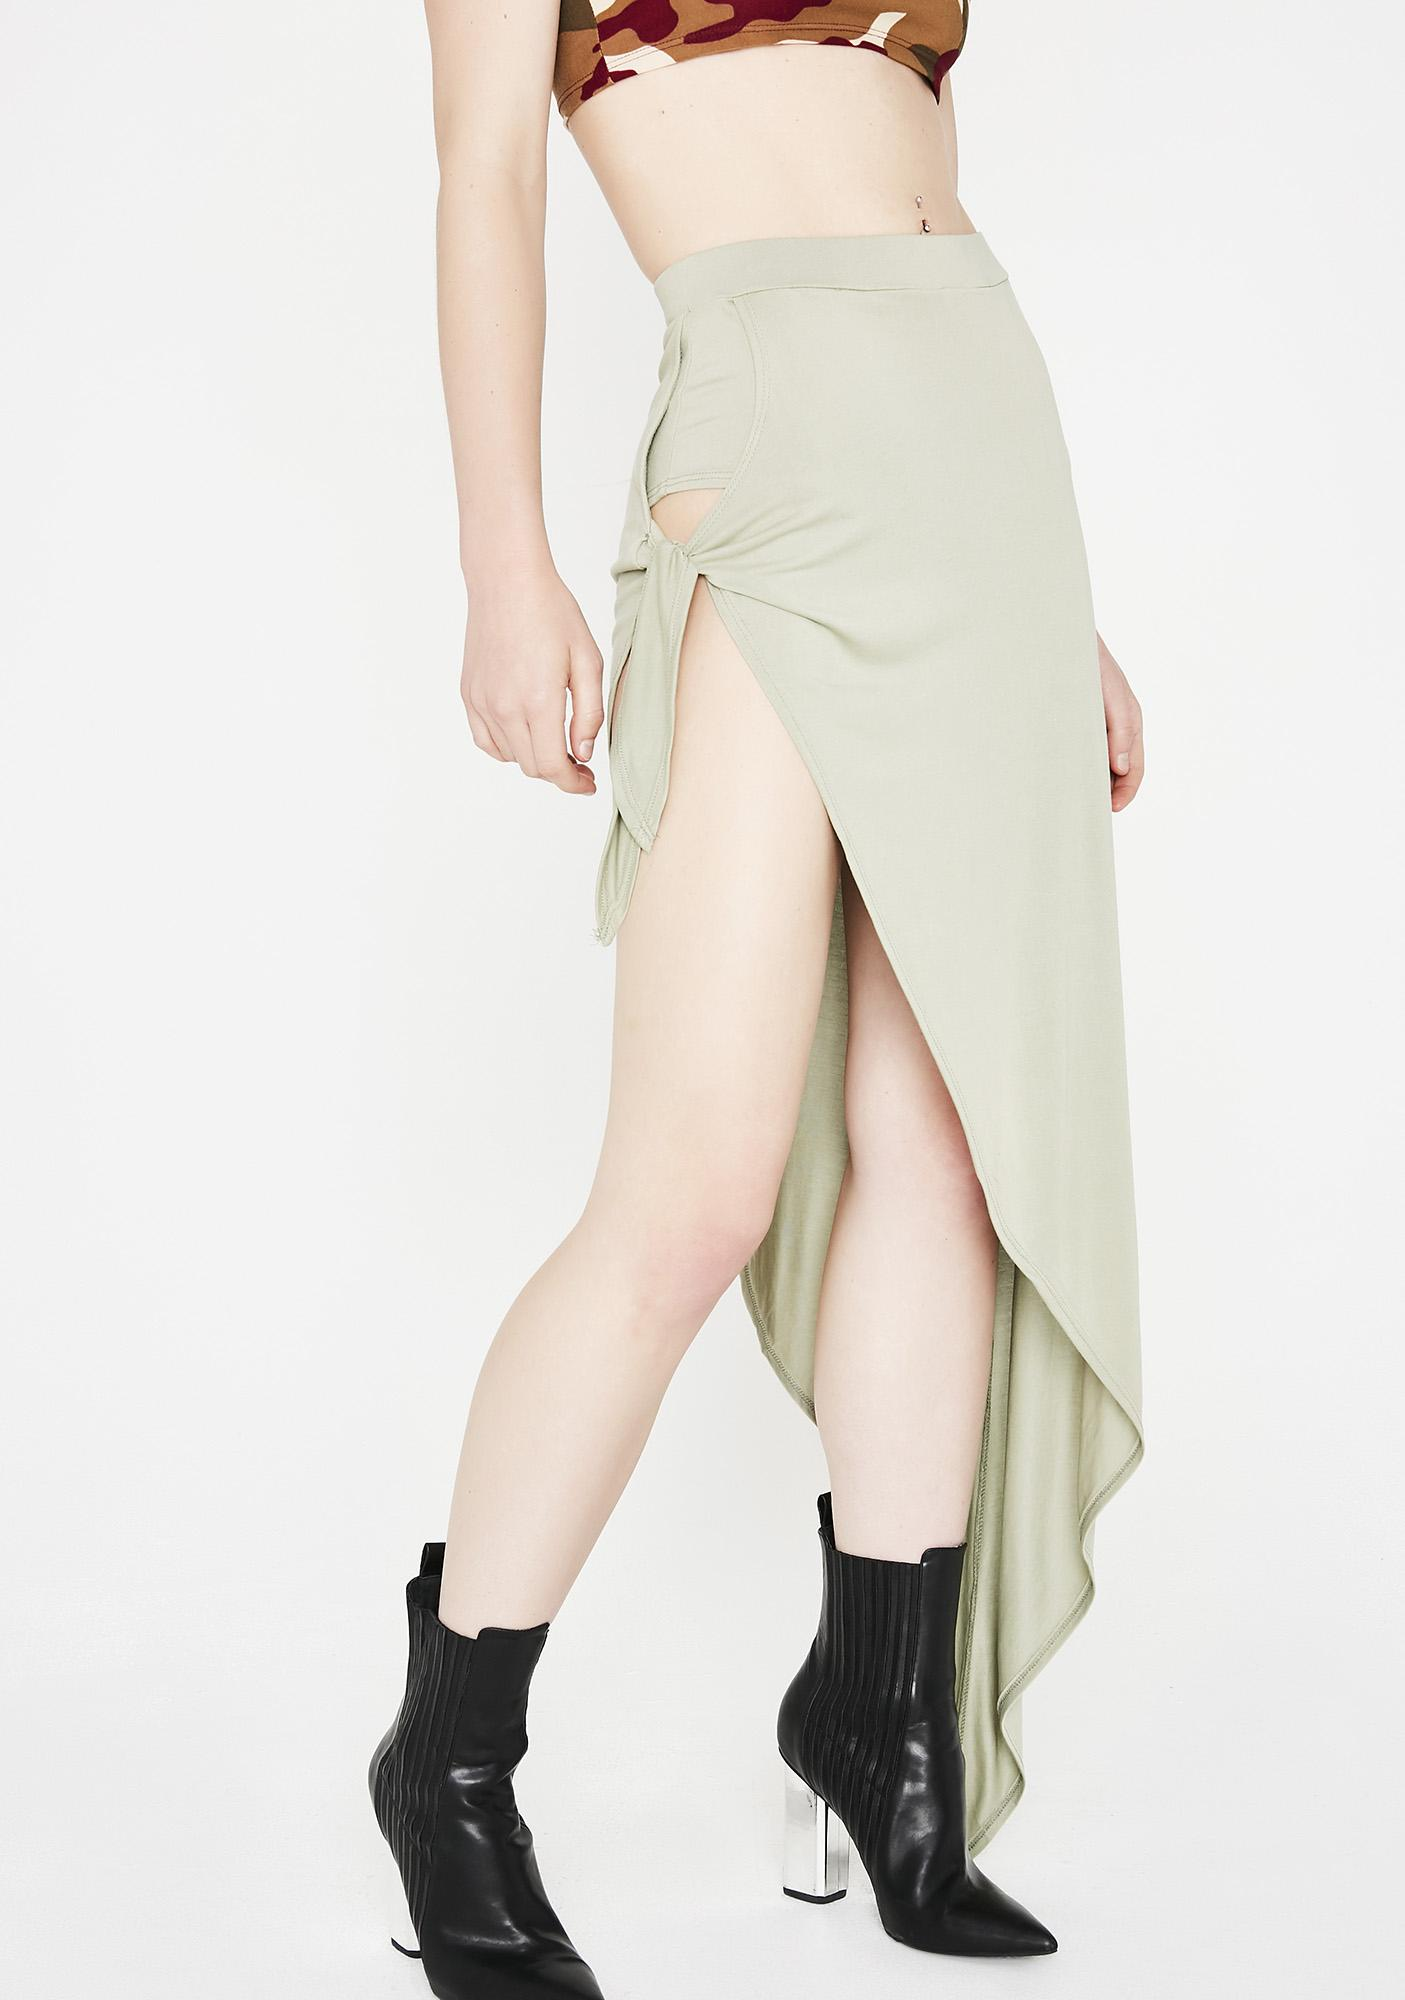 Give No Chances Side Tie Skirt